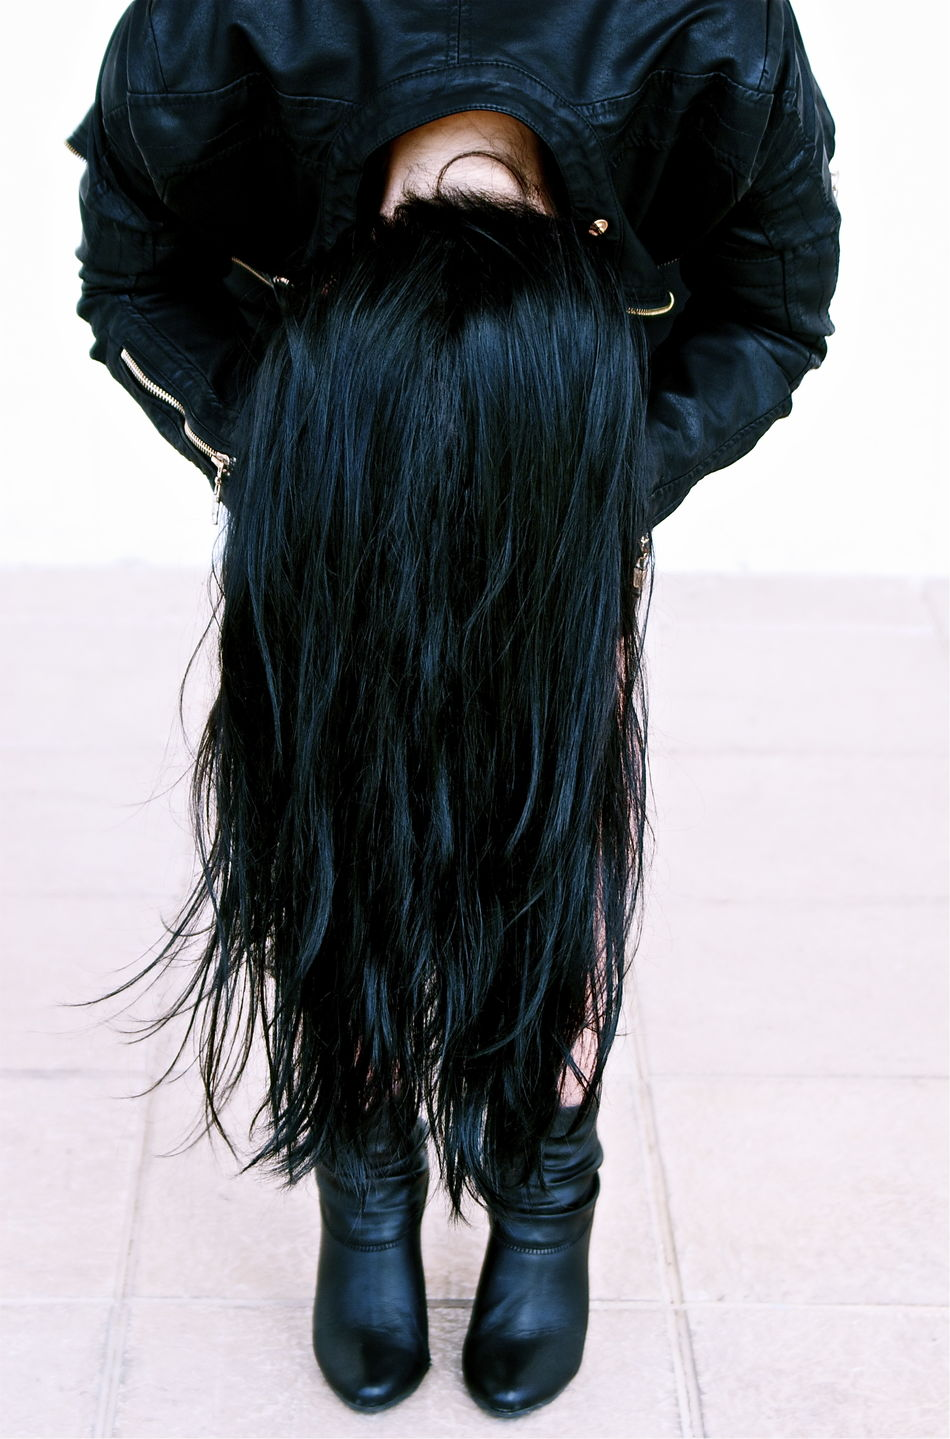 Aesthetics Art, Drawing, Creativity Black Color Boots Day Focus On Foreground Hair Style Jacket Kvission Let Your Hair Down Lifestyles Long Hair Mónica Nogueira. No Face Outdoors Rock & Roll Still Life To Pose Vertical Woman Portrait Woman Power Zip Fashion